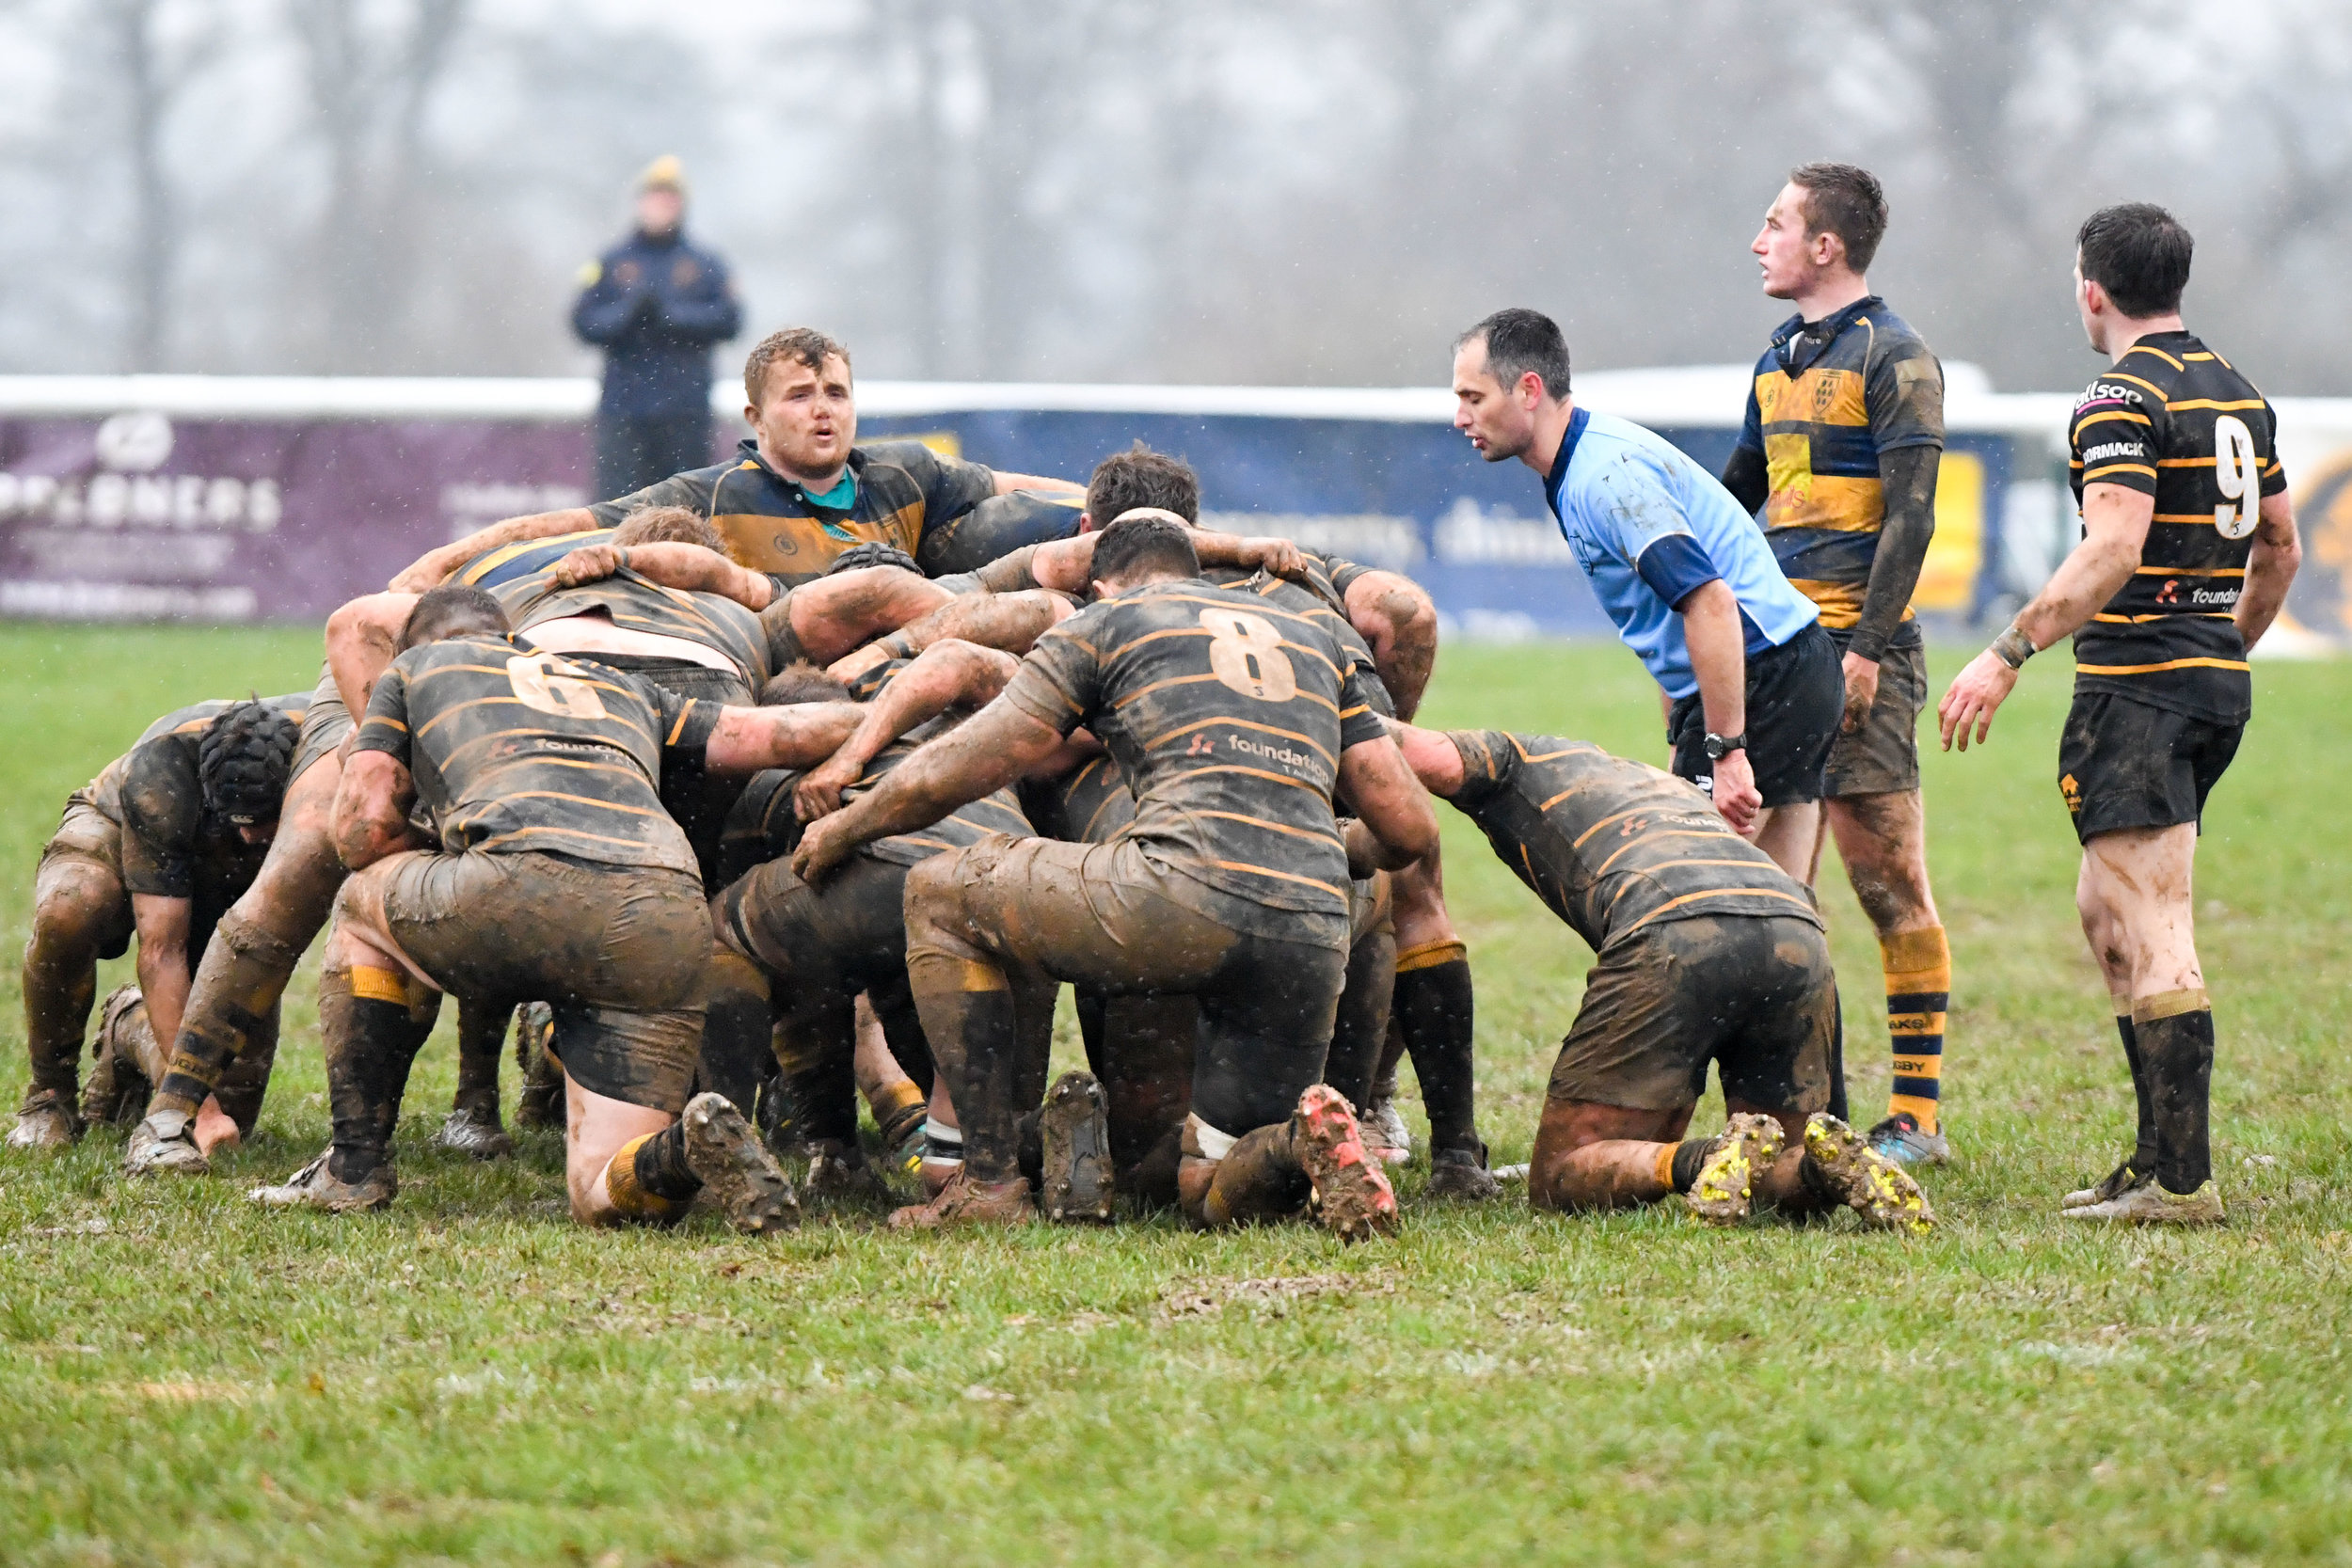 Oaks Scotty Sedgwick prepares to pack down for another scrum against London Cornish. Photo Credit: David Purday